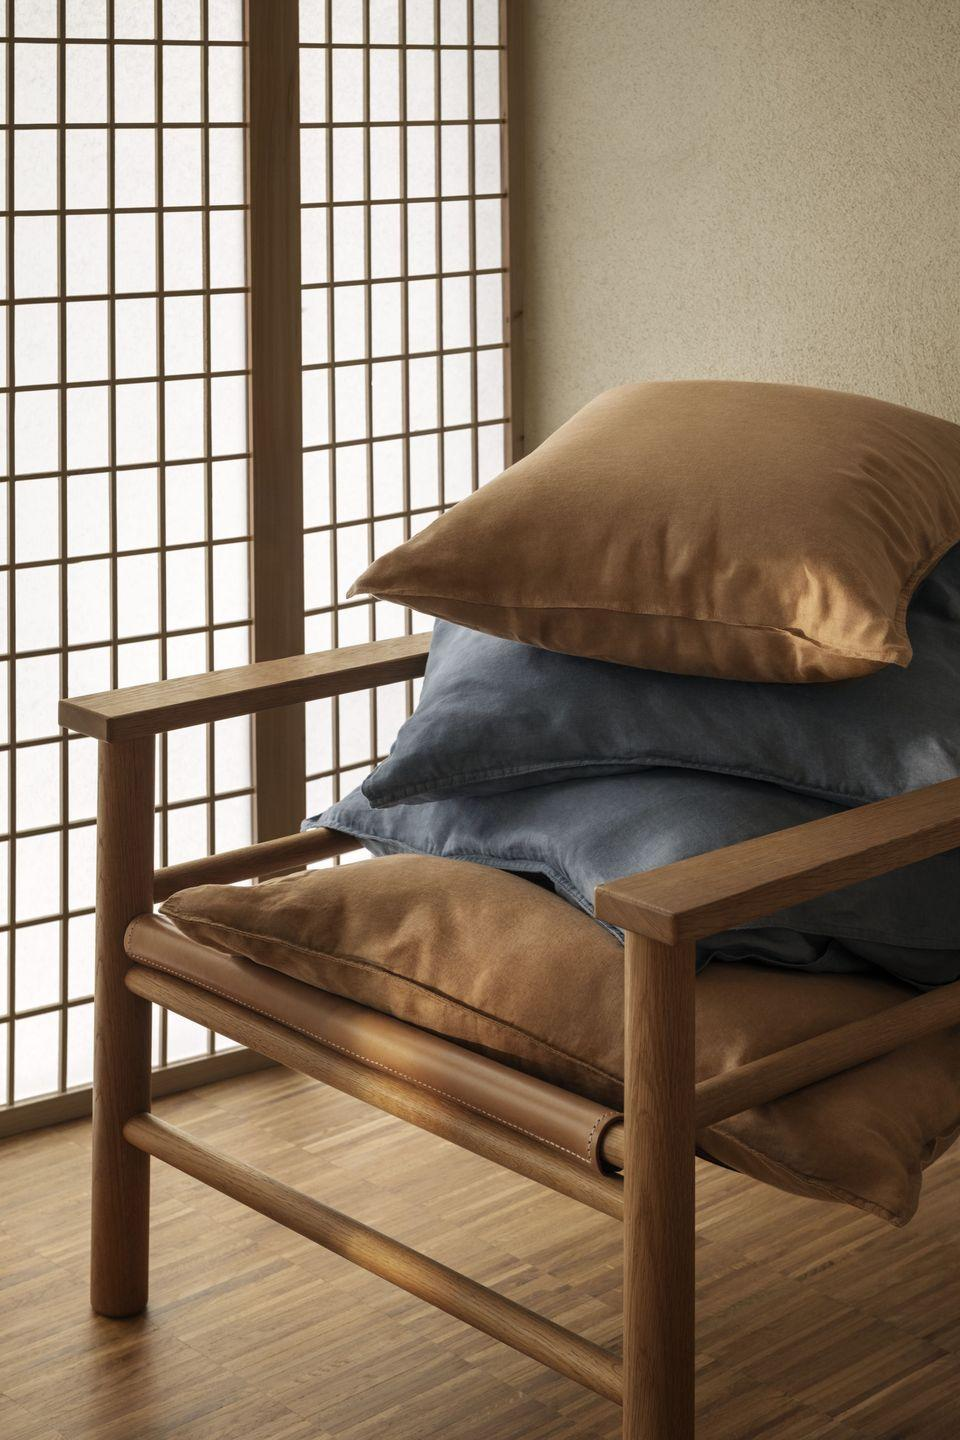 """<p>Pile cushions in a mix of quality fabrics on to the sofa for enhanced comfort and warmth.</p><p>When it comes to cushions, adding different textures and complementary colourways is an easy way to make your sofa or chairs feel sumptuous and inviting.</p><p><a class=""""link rapid-noclick-resp"""" href=""""https://go.redirectingat.com?id=127X1599956&url=https%3A%2F%2Fwww2.hm.com%2Fen_gb%2Fhome%2Fshop-by-product%2Fcushions.html&sref=https%3A%2F%2Fwww.prima.co.uk%2Fhome-ideas%2Fhome-accessories-buys%2Fg37325647%2Fhandm-home-autumn-collection%2F"""" rel=""""nofollow noopener"""" target=""""_blank"""" data-ylk=""""slk:Shop cushions & cushion covers at H&M"""">Shop cushions & cushion covers at H&M</a></p>"""